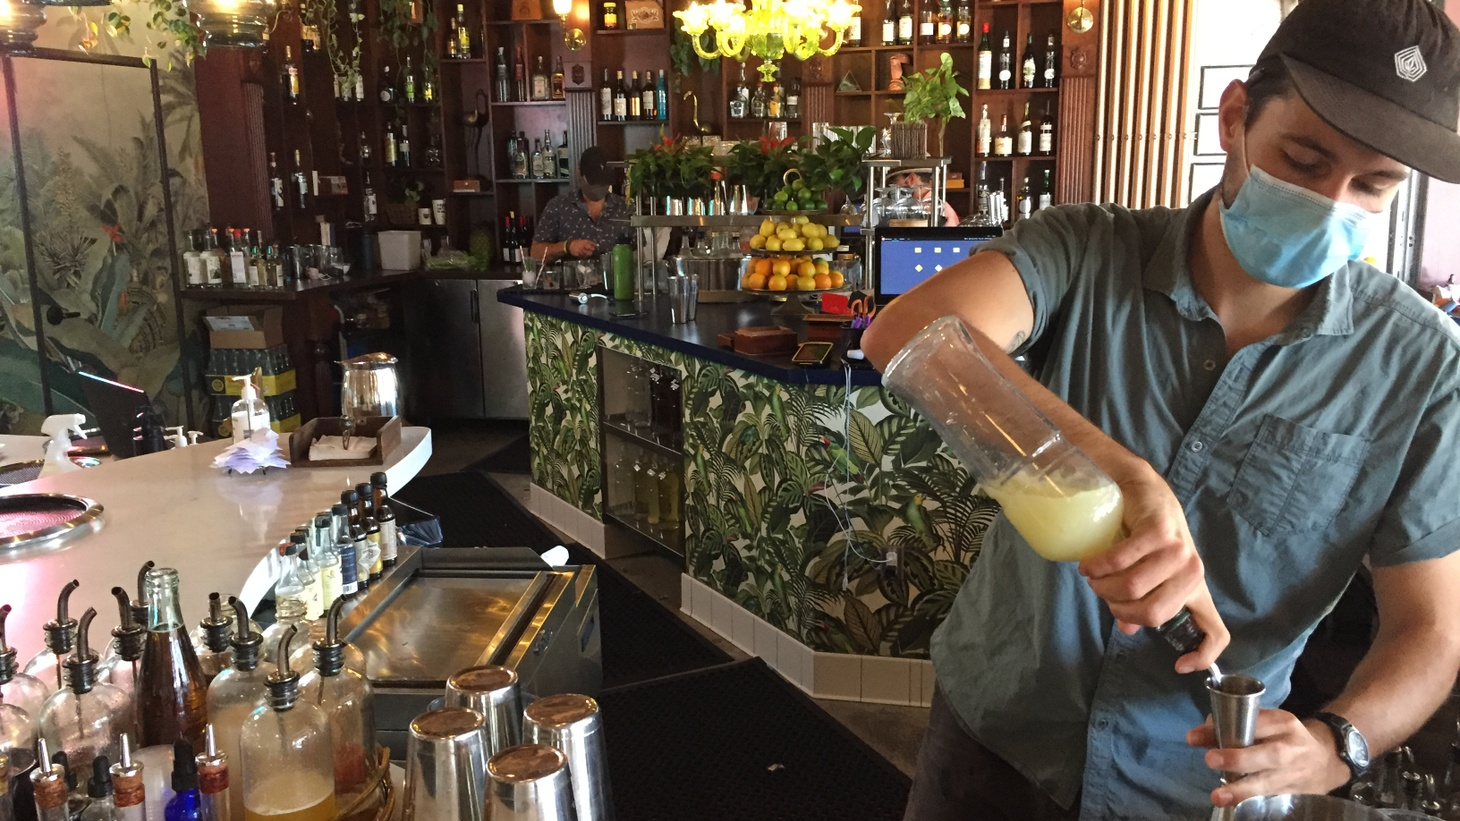 Bartender David Pecorari mixes up drinks at Shaker Mill in downtown Santa Barbara. The bar specializing in rum cocktails inspired by the Caribbean offered takeaway drinks as a way to make ends meet throughout the coronavirus lockdown.